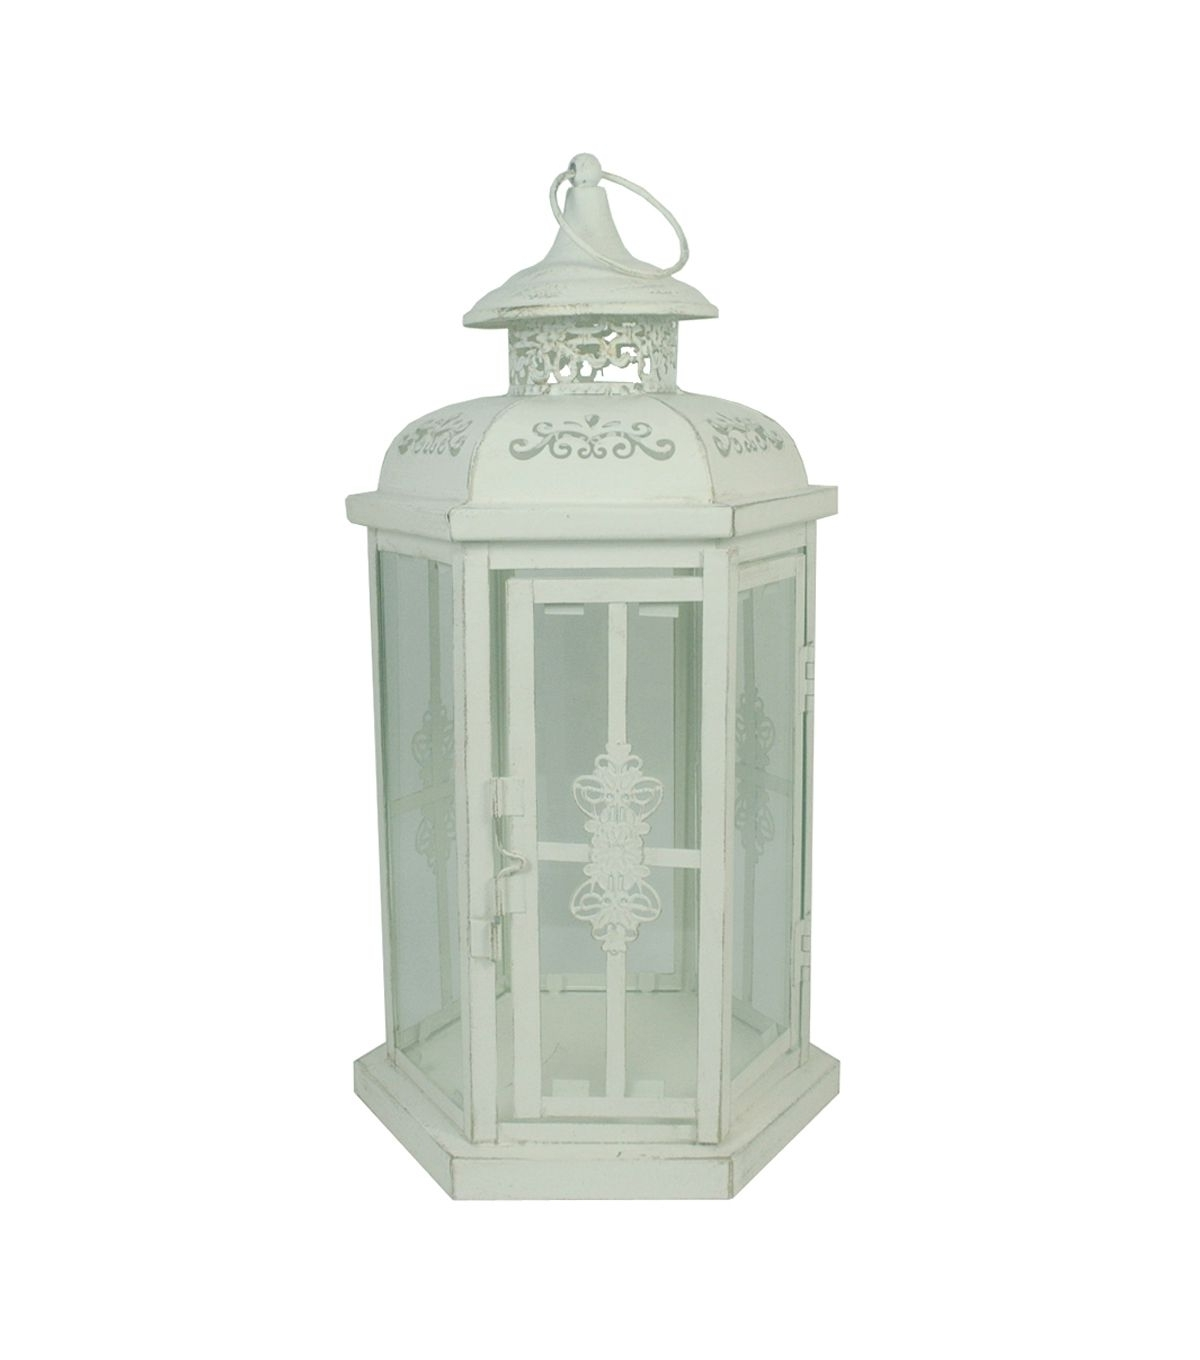 Hudson 43™ Candle & Light Collection Distressed Metal Lantern White Intended For Best And Newest Joanns Outdoor Lanterns (View 6 of 20)